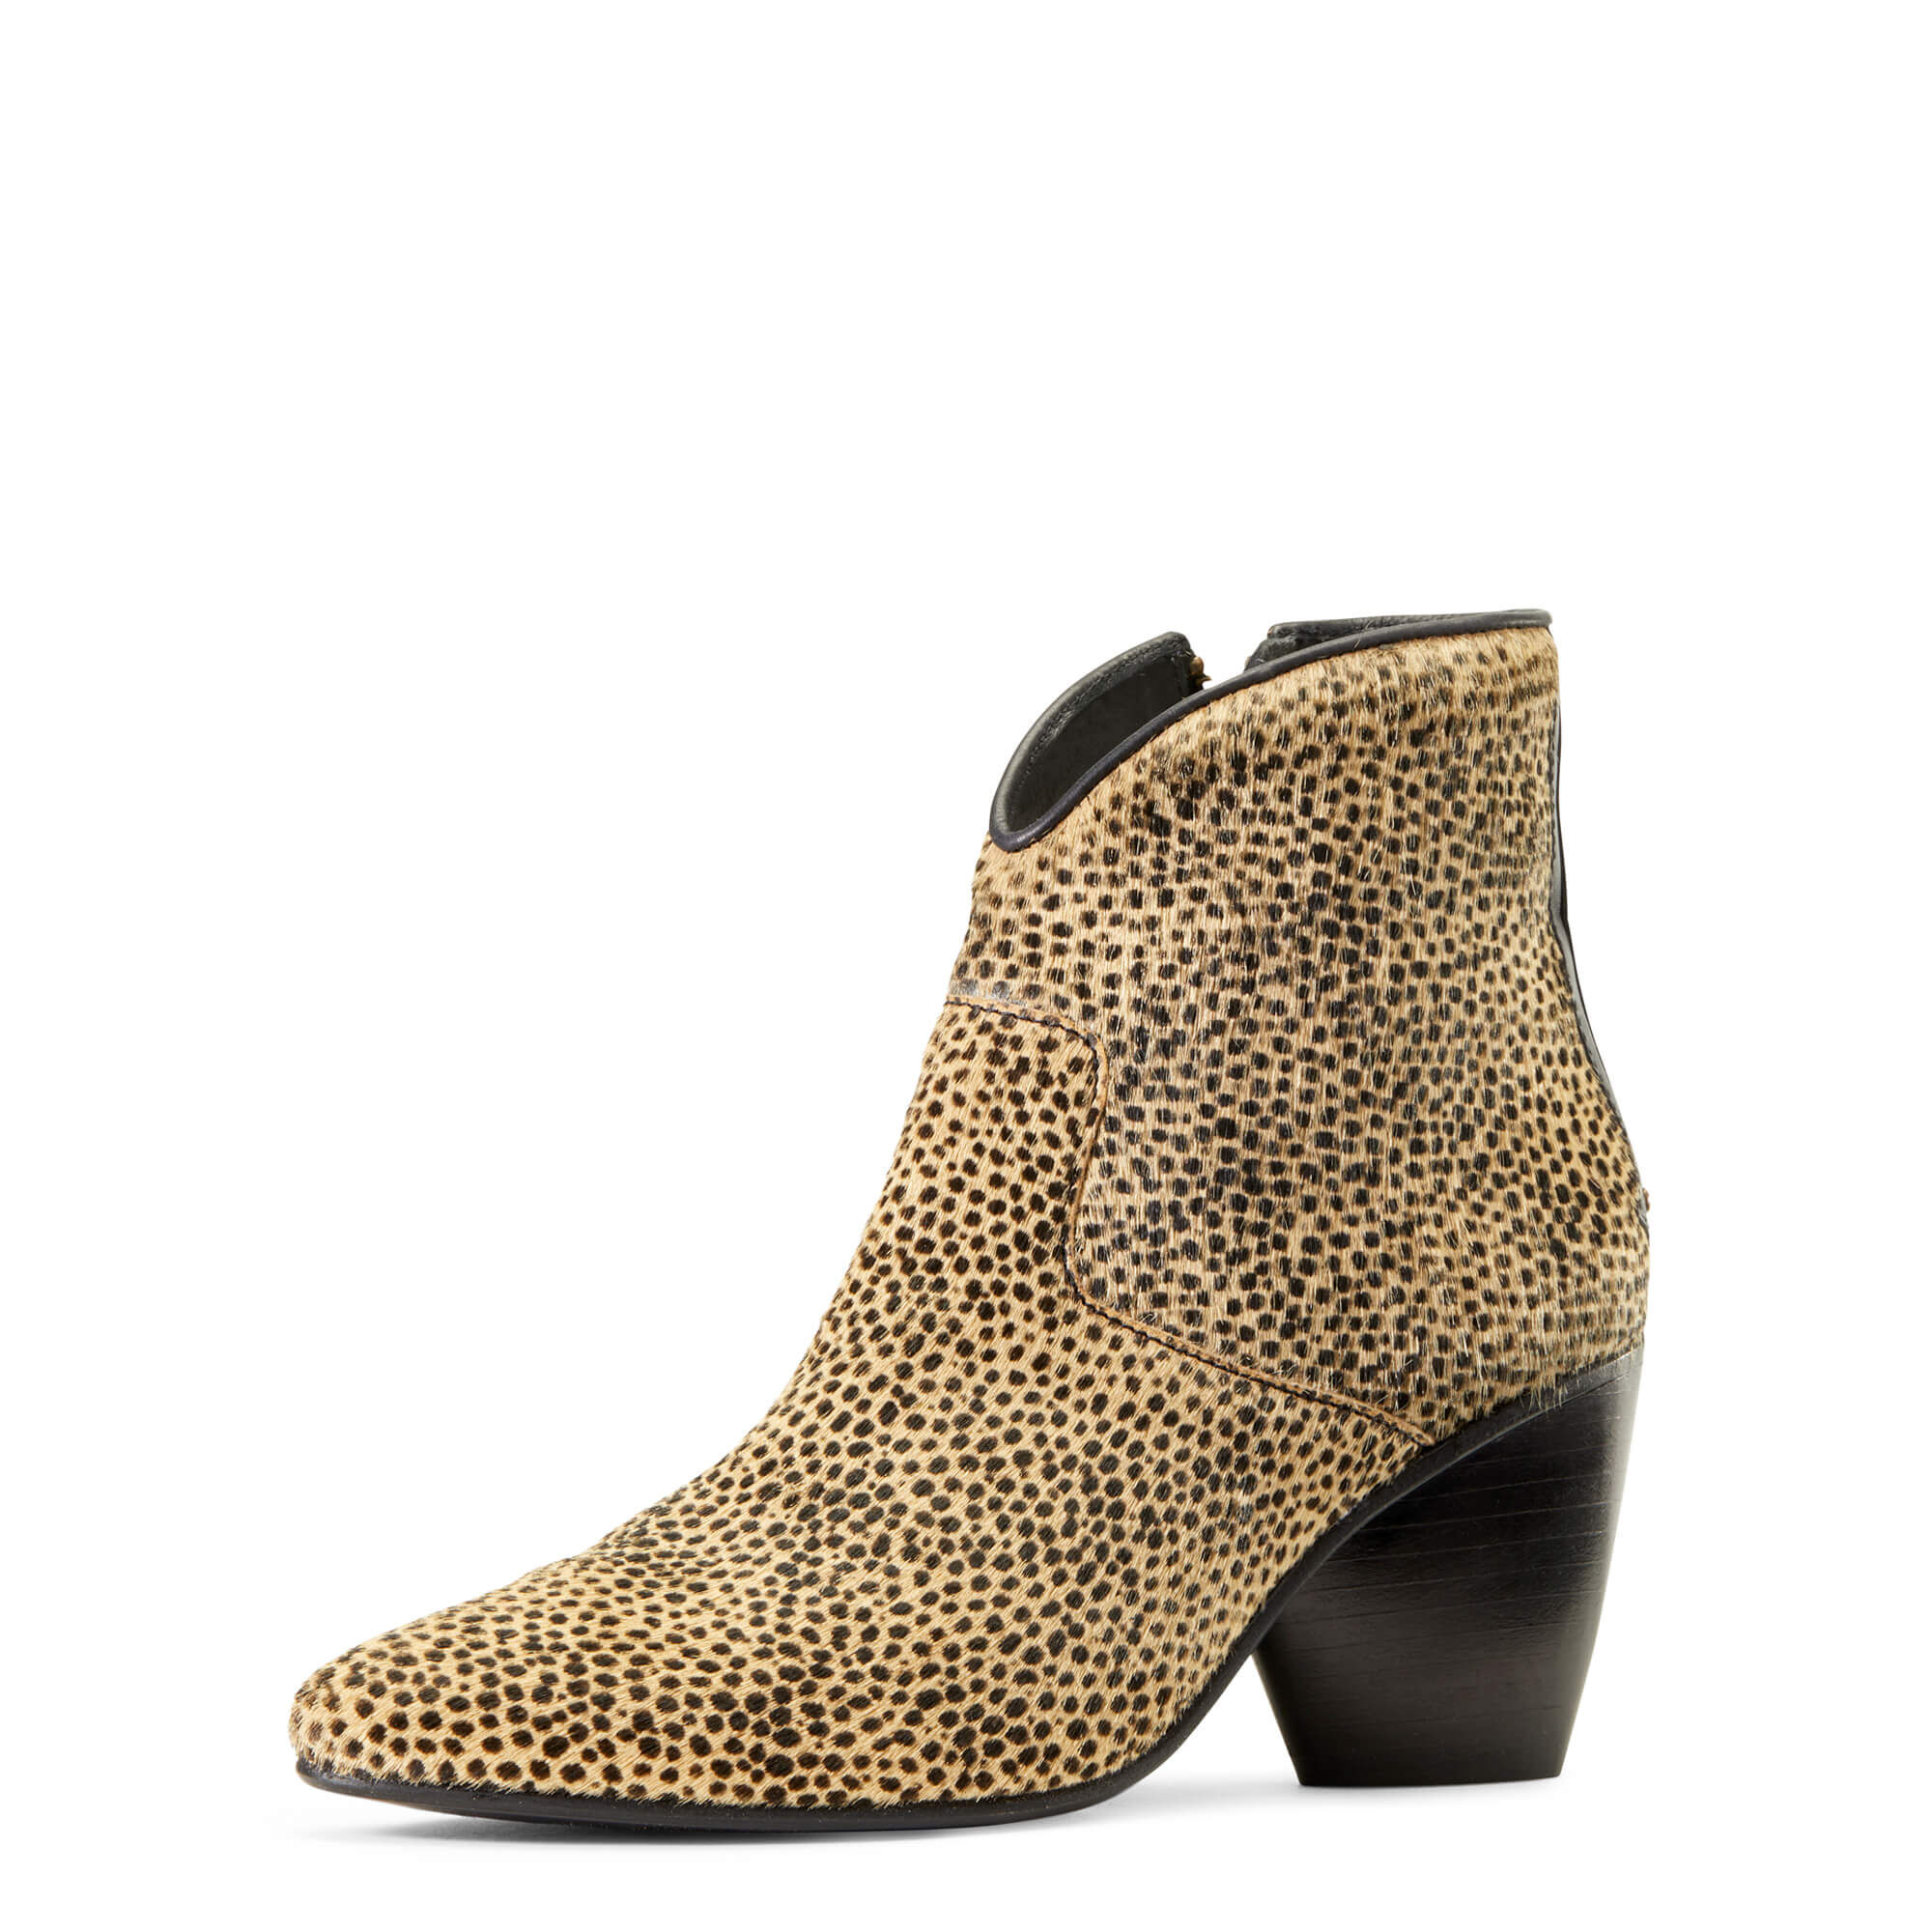 Women's Meadow Brook Ankle Boots in Cheetah Hair-On Leather by Ariat Two24